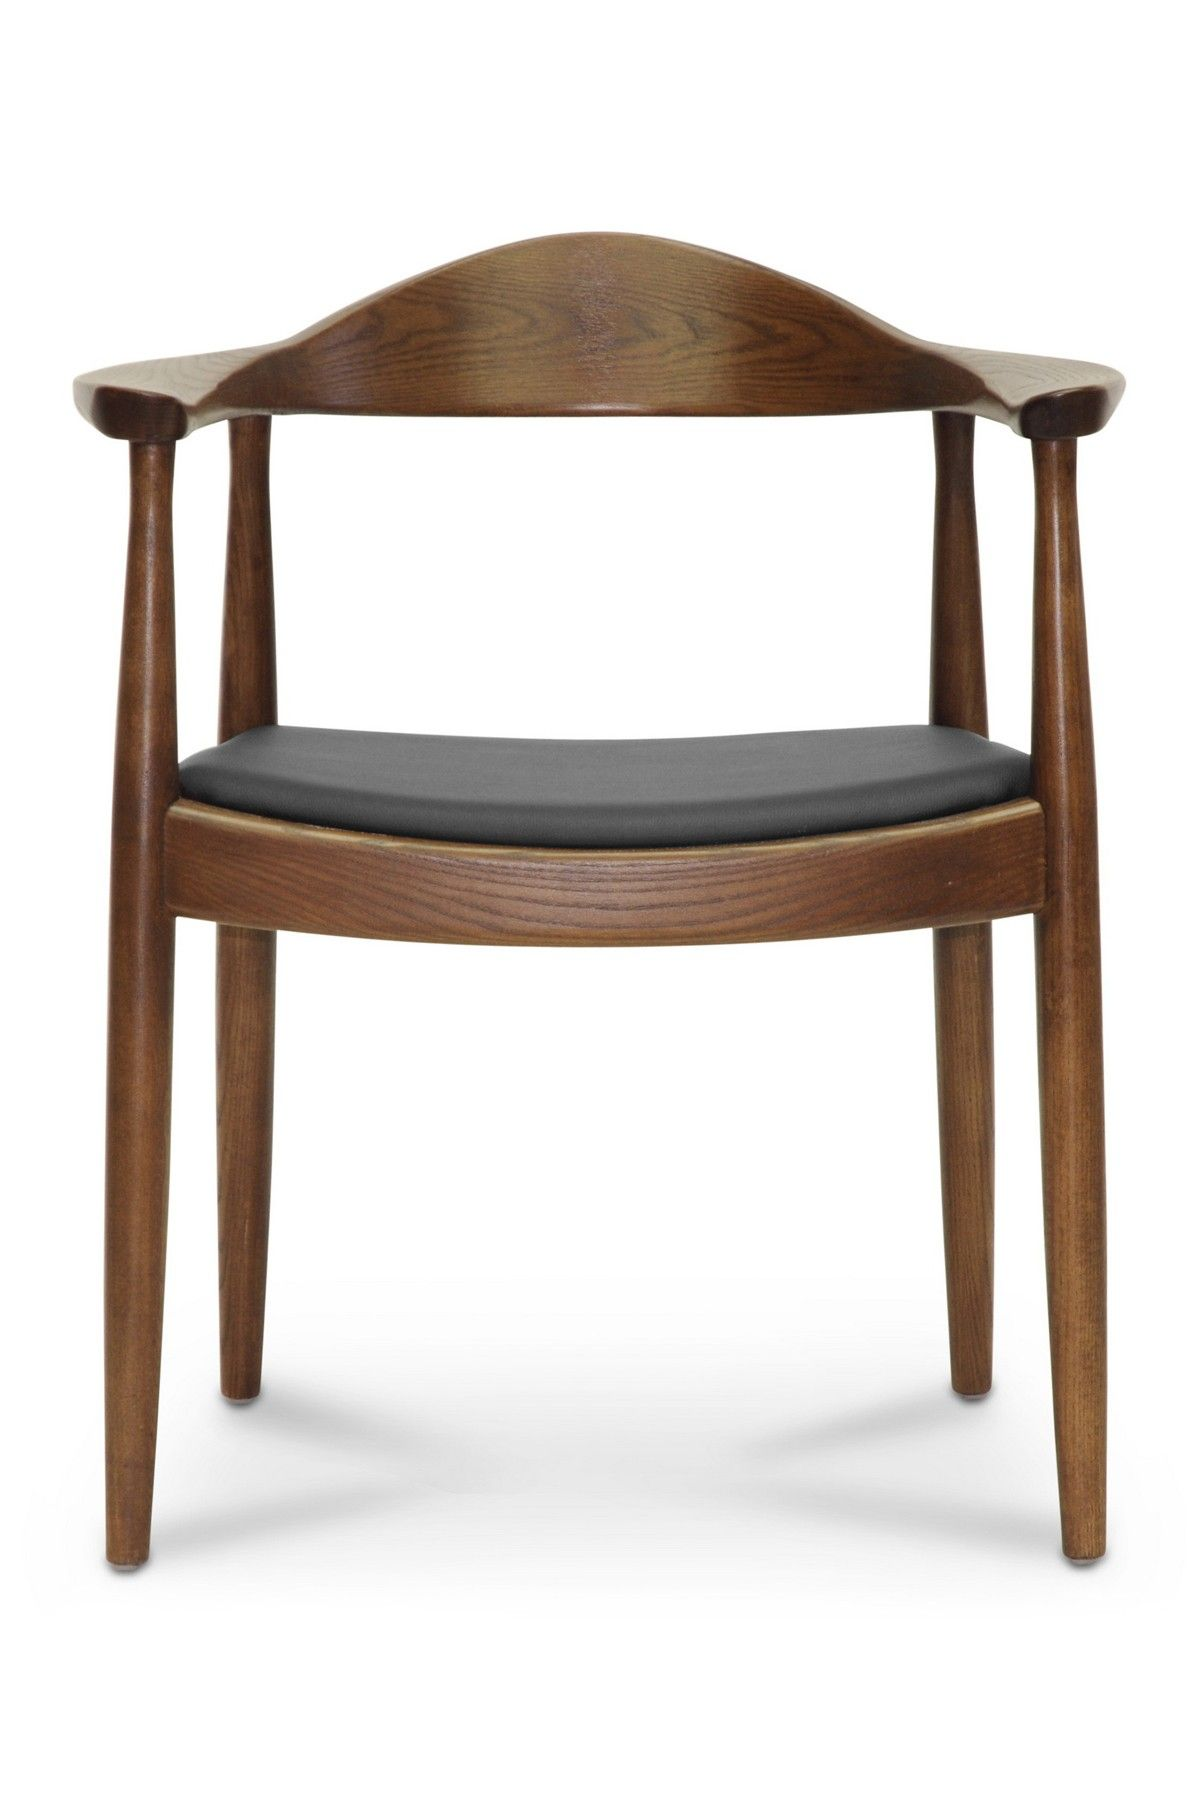 Embick Mid Century Modern Dining Chair | HauteLook